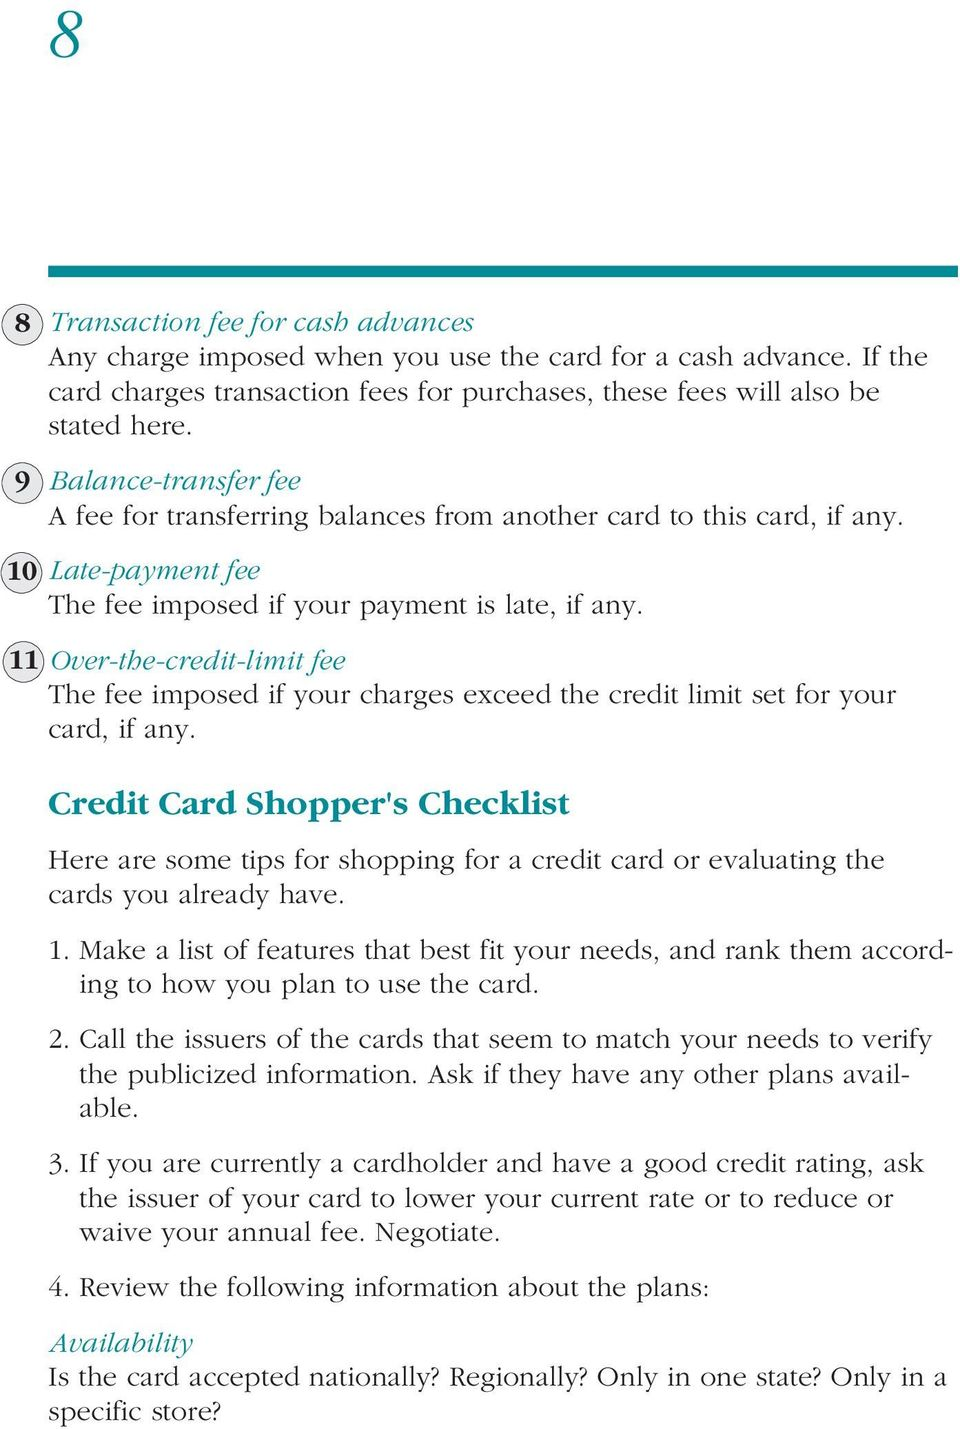 11 Over-the-credit-limit fee The fee imposed if your charges exceed the credit limit set for your card, if any.